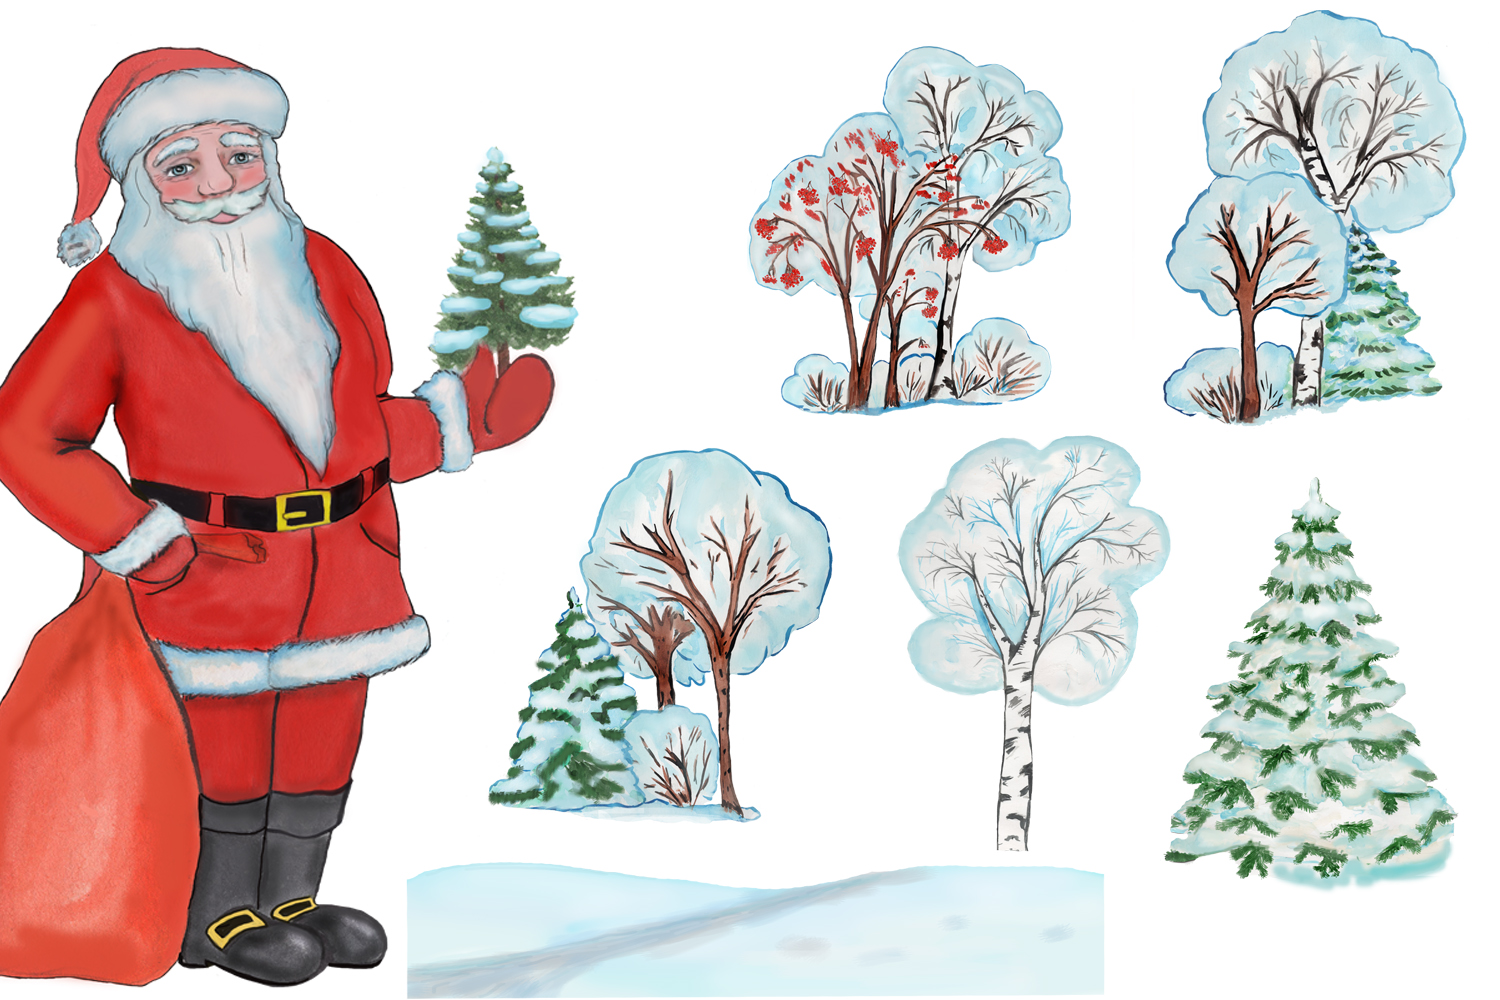 Christmas clipart, winter forest trees with Santa Claus example image 4